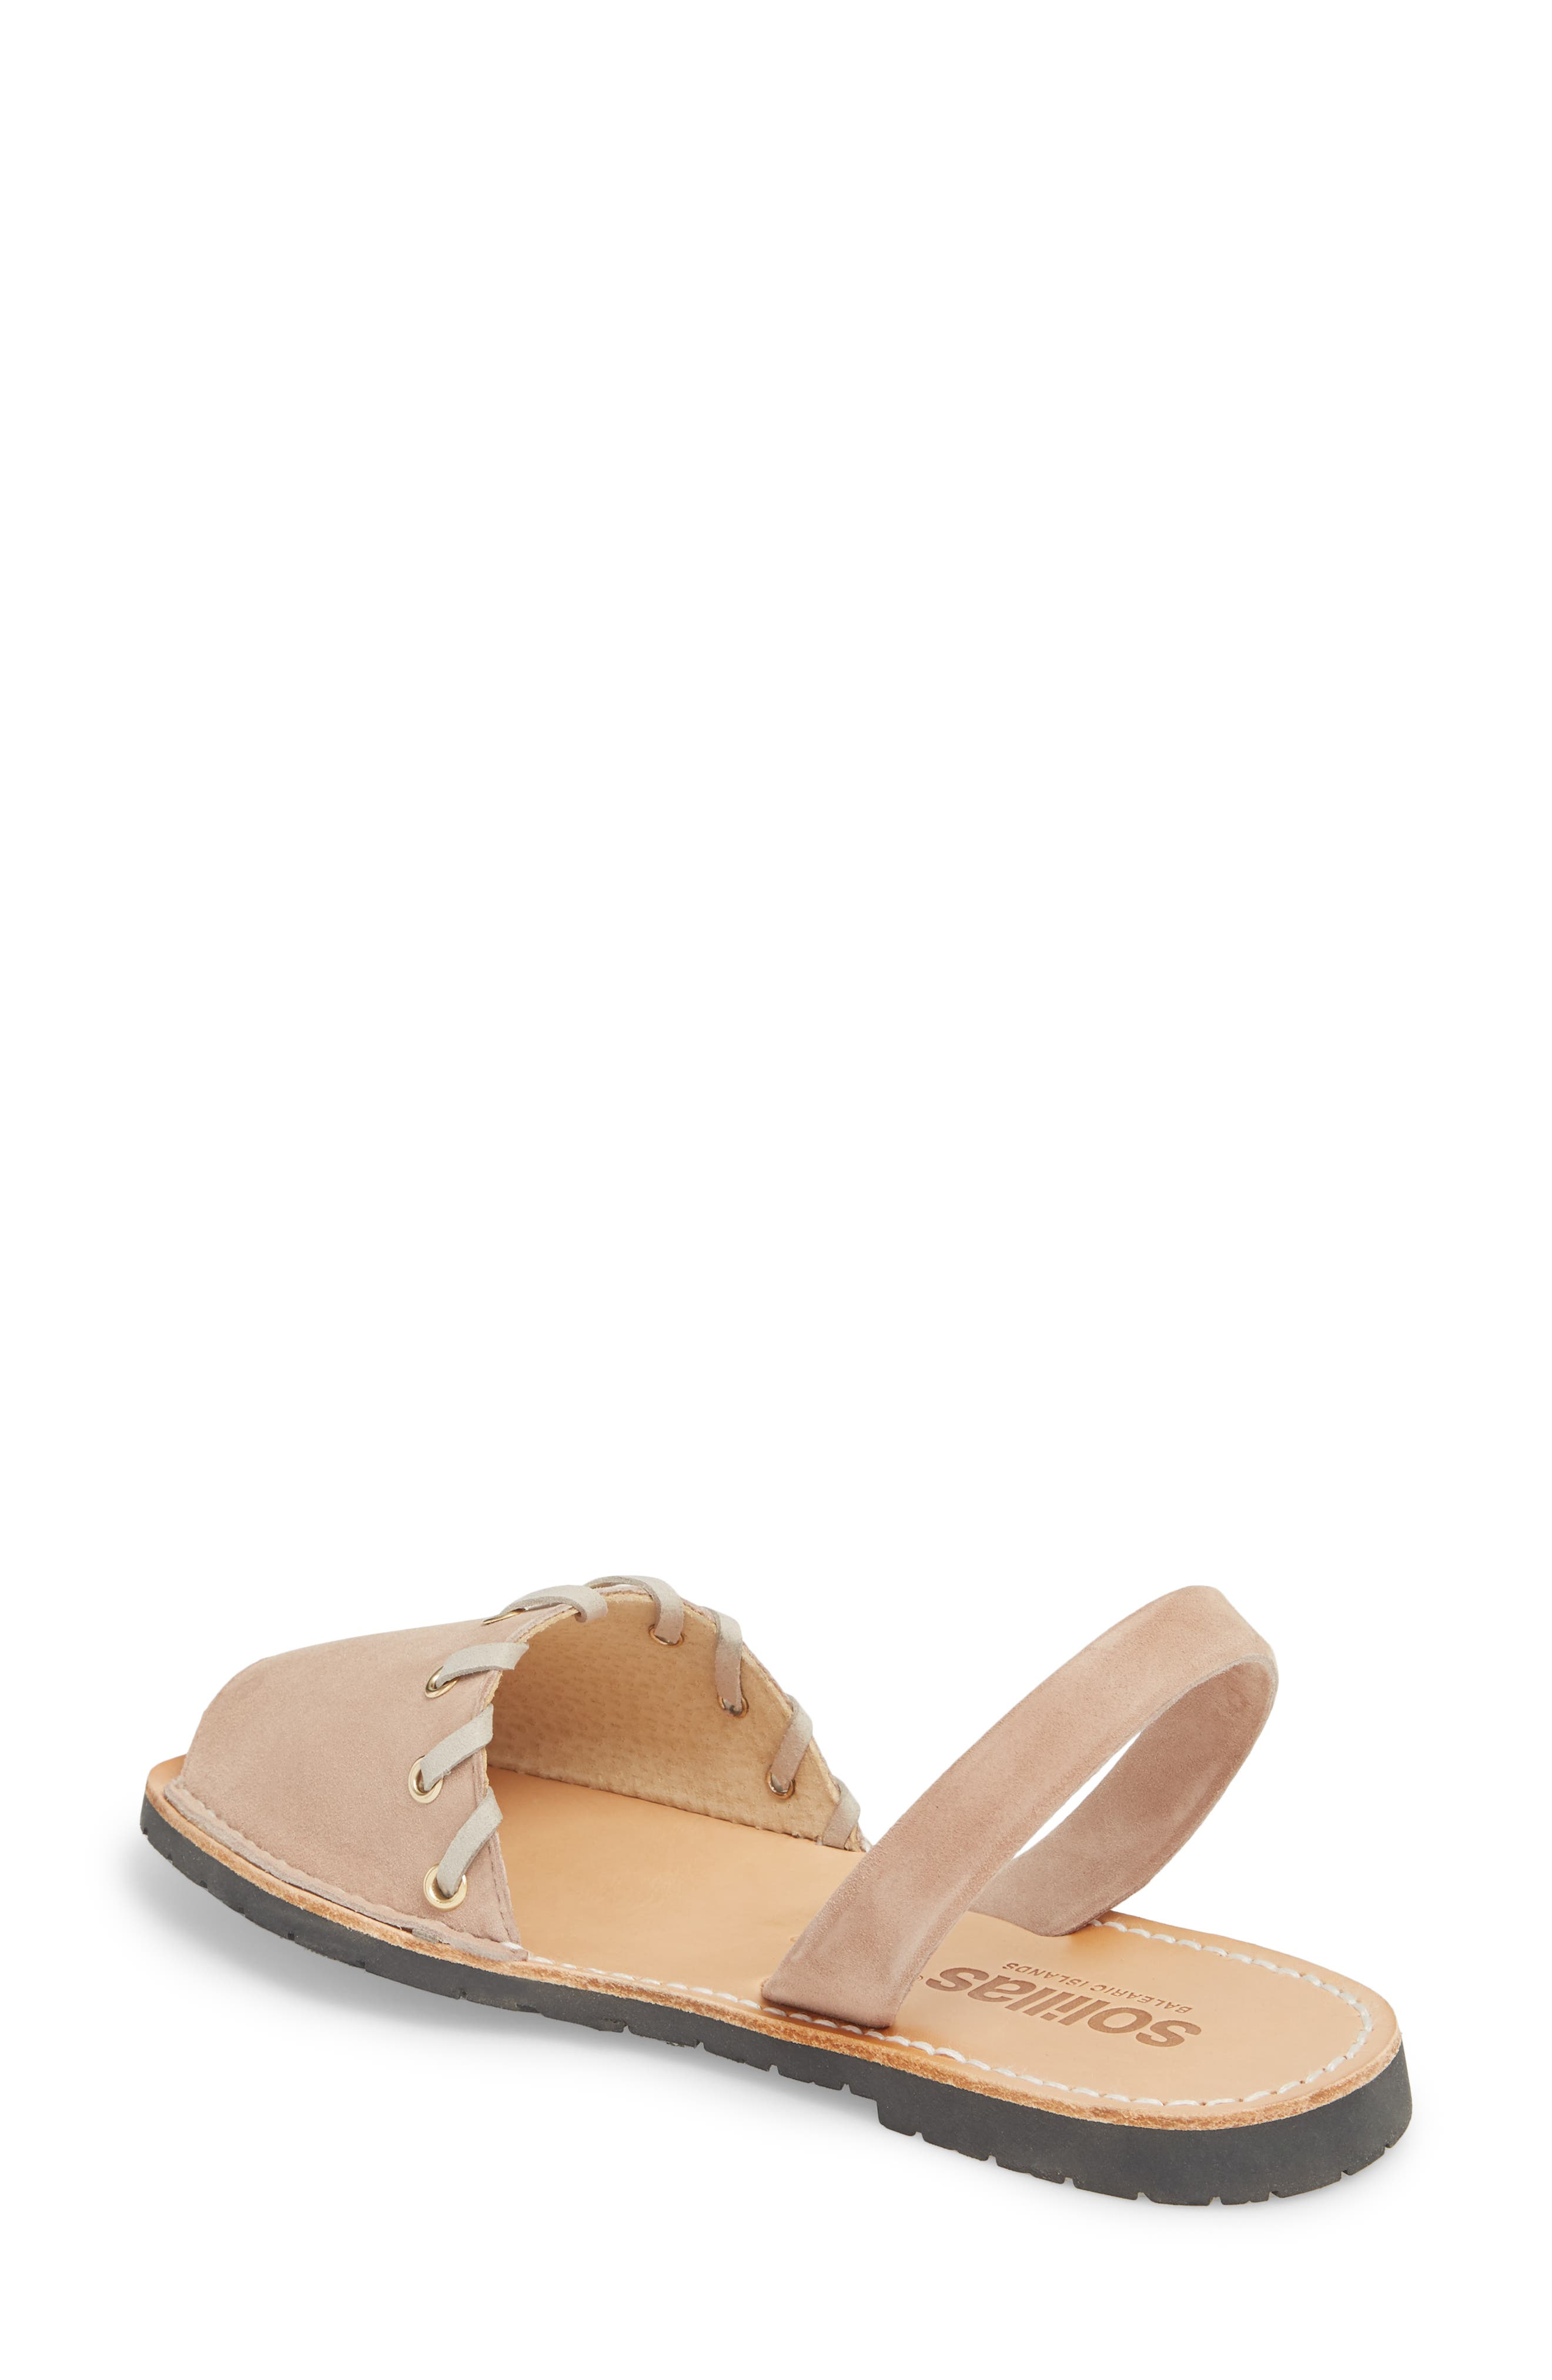 Whipstitched Flat Sandal,                             Alternate thumbnail 2, color,                             060